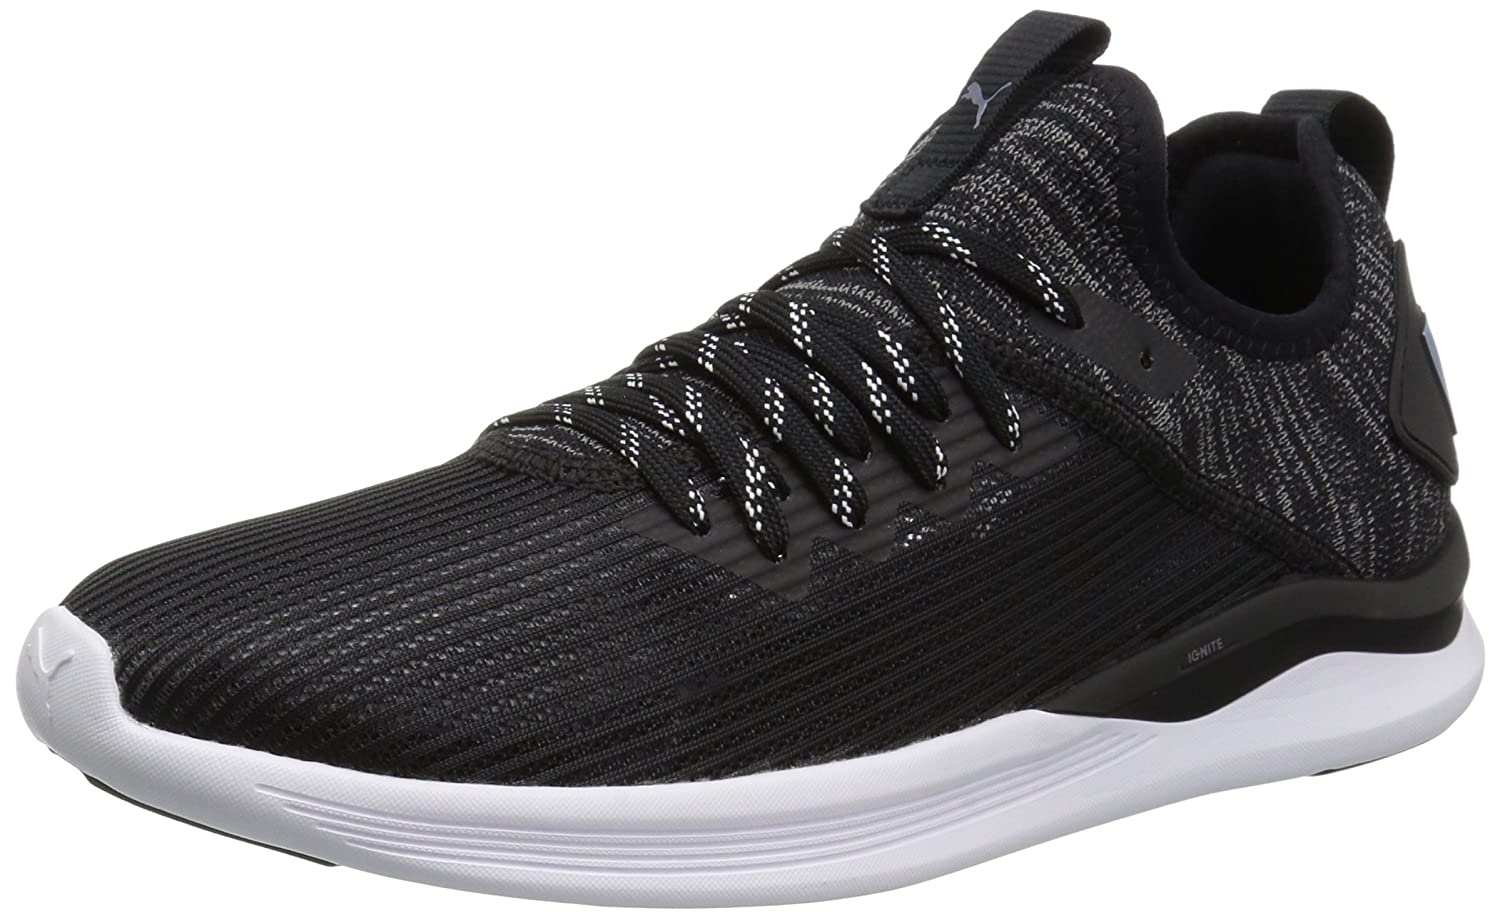 Puma Black-quiet Shade PUMA Womens Ignite Flash Evoknit Stripped Wn Sneaker